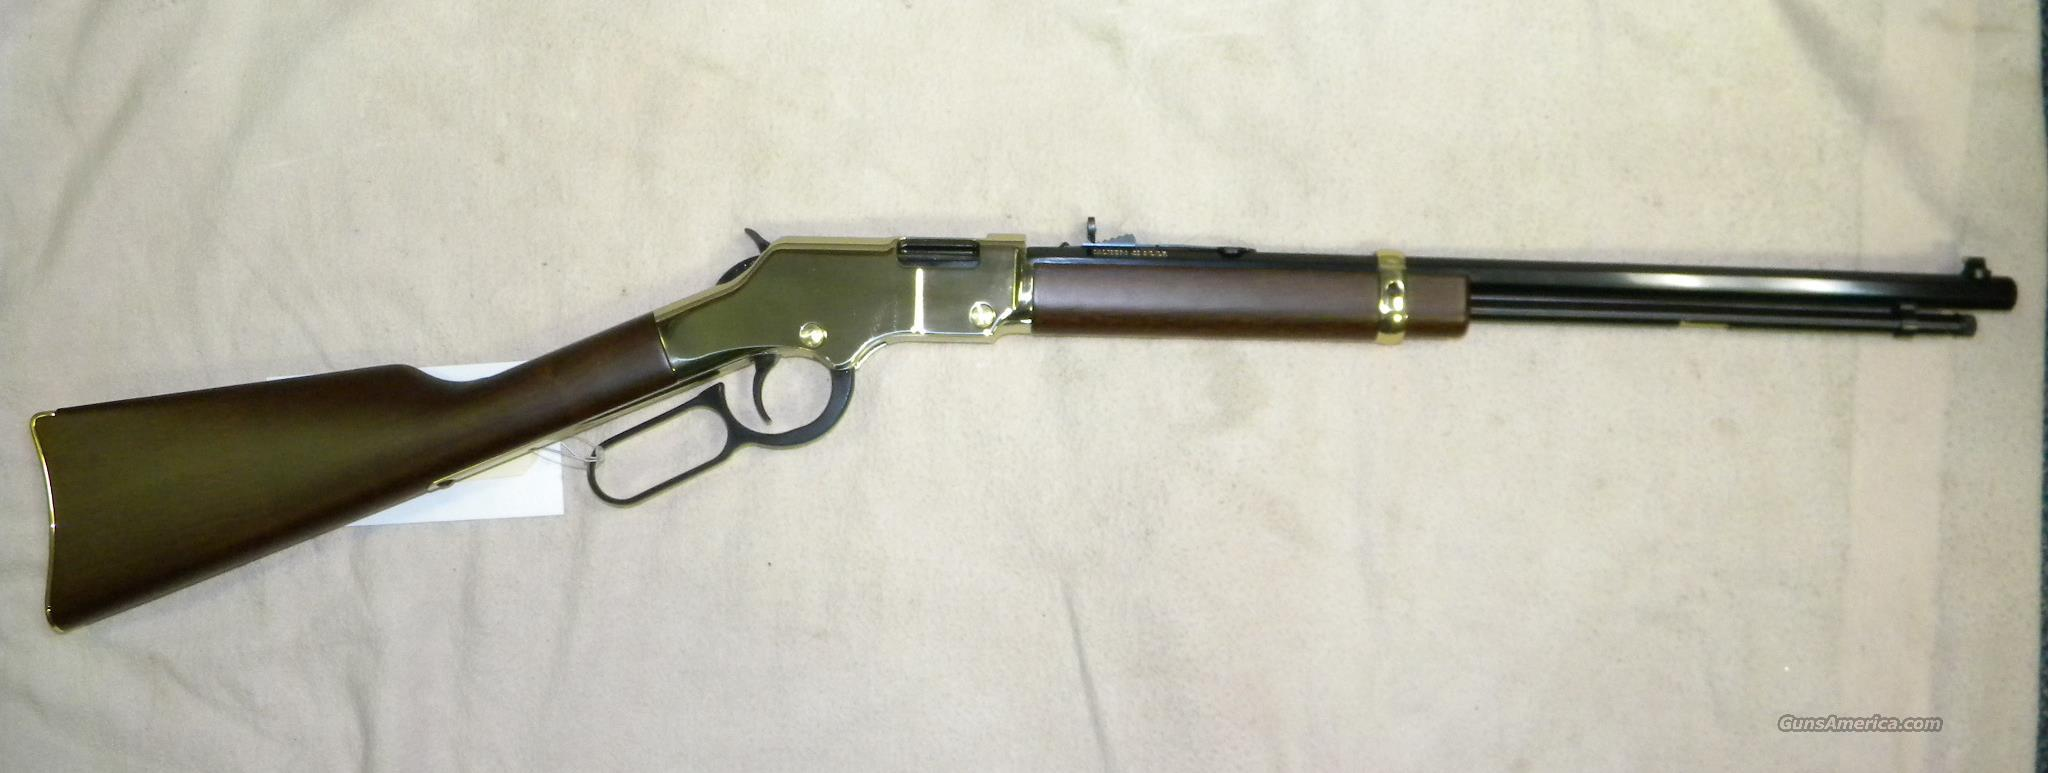 Henry H004 ''Golden Boy'' .22 LR Lever-Action  Guns > Rifles > Henry Rifle Company